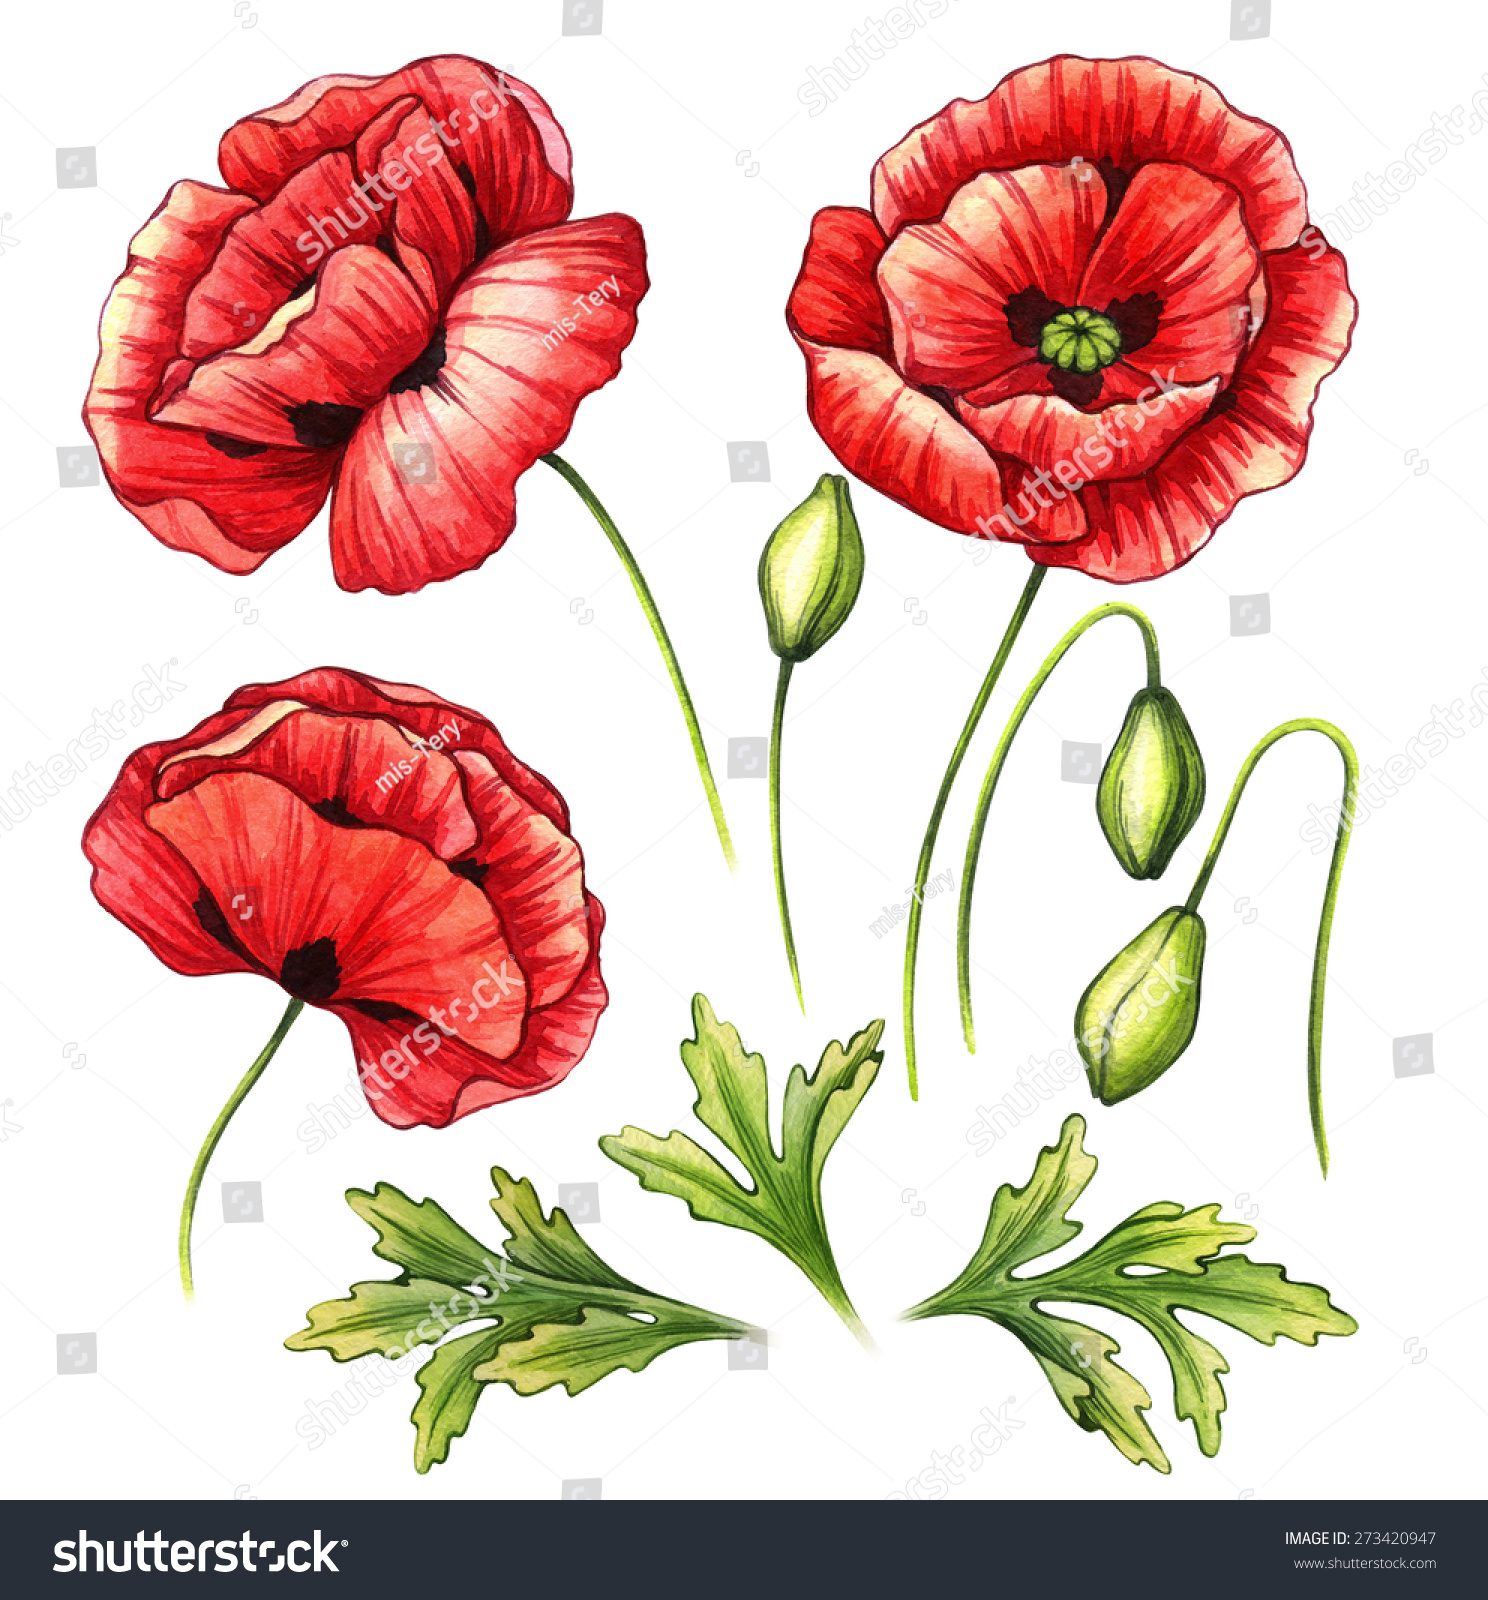 Similar Images Stock Photos Vectors Of Watercolor Set Poppies